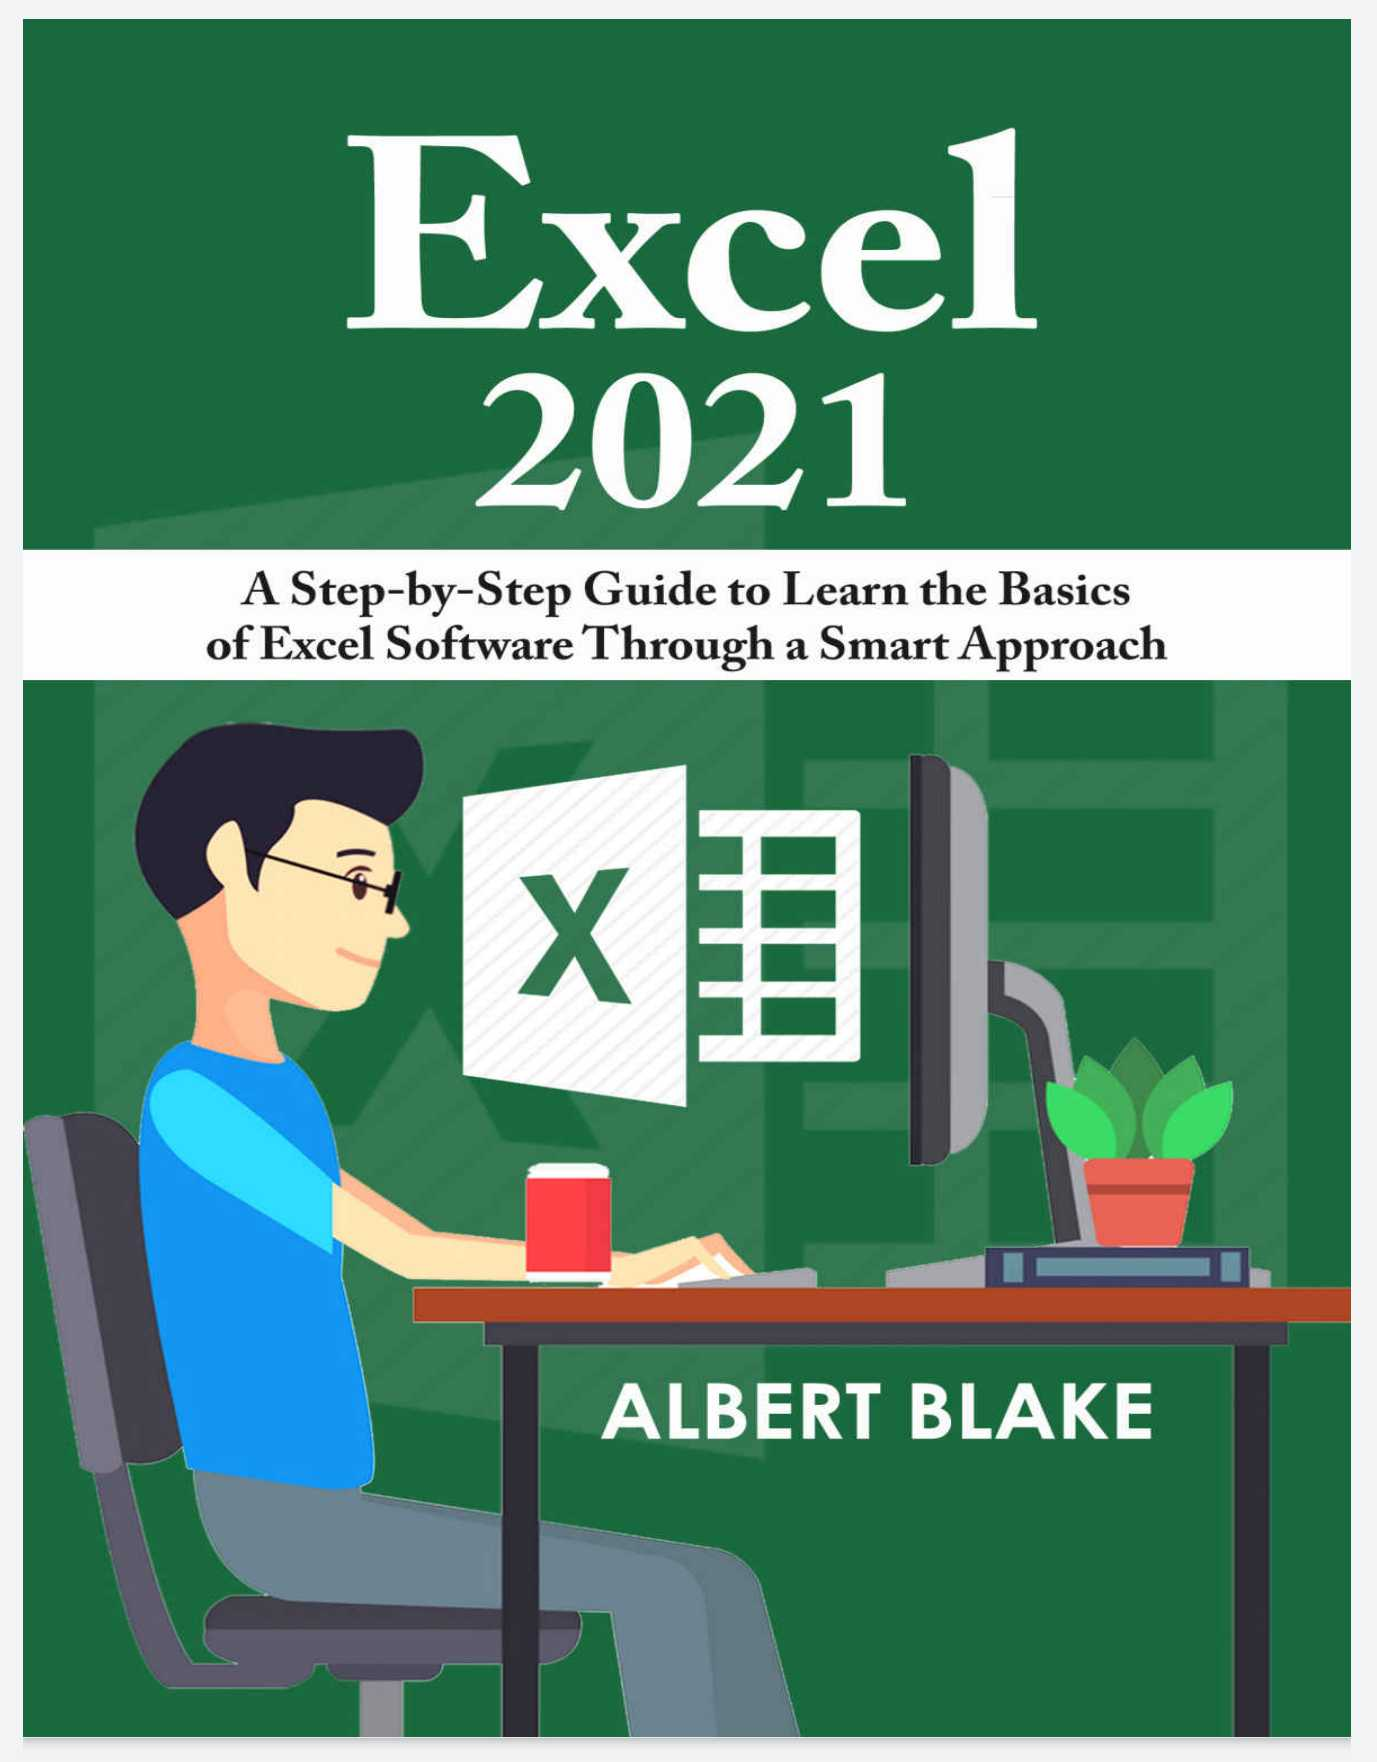 Excel 2021: A Step-by-Step Guide to Learn the Basics of Excel Software Through a Smart Approach